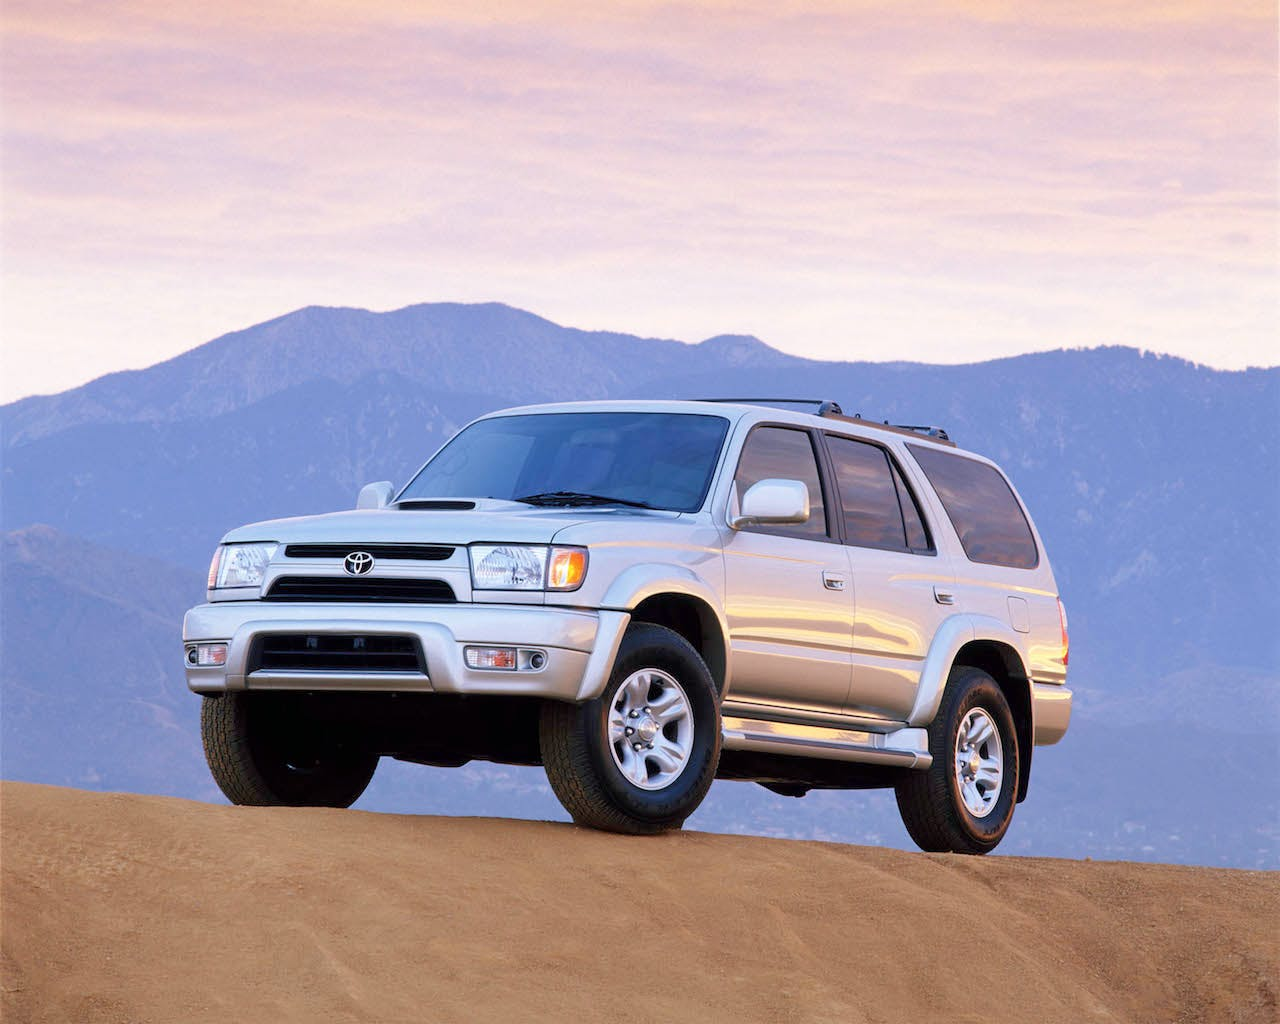 Know Before You Buy: How to Inspect a Used Toyota 4Runner